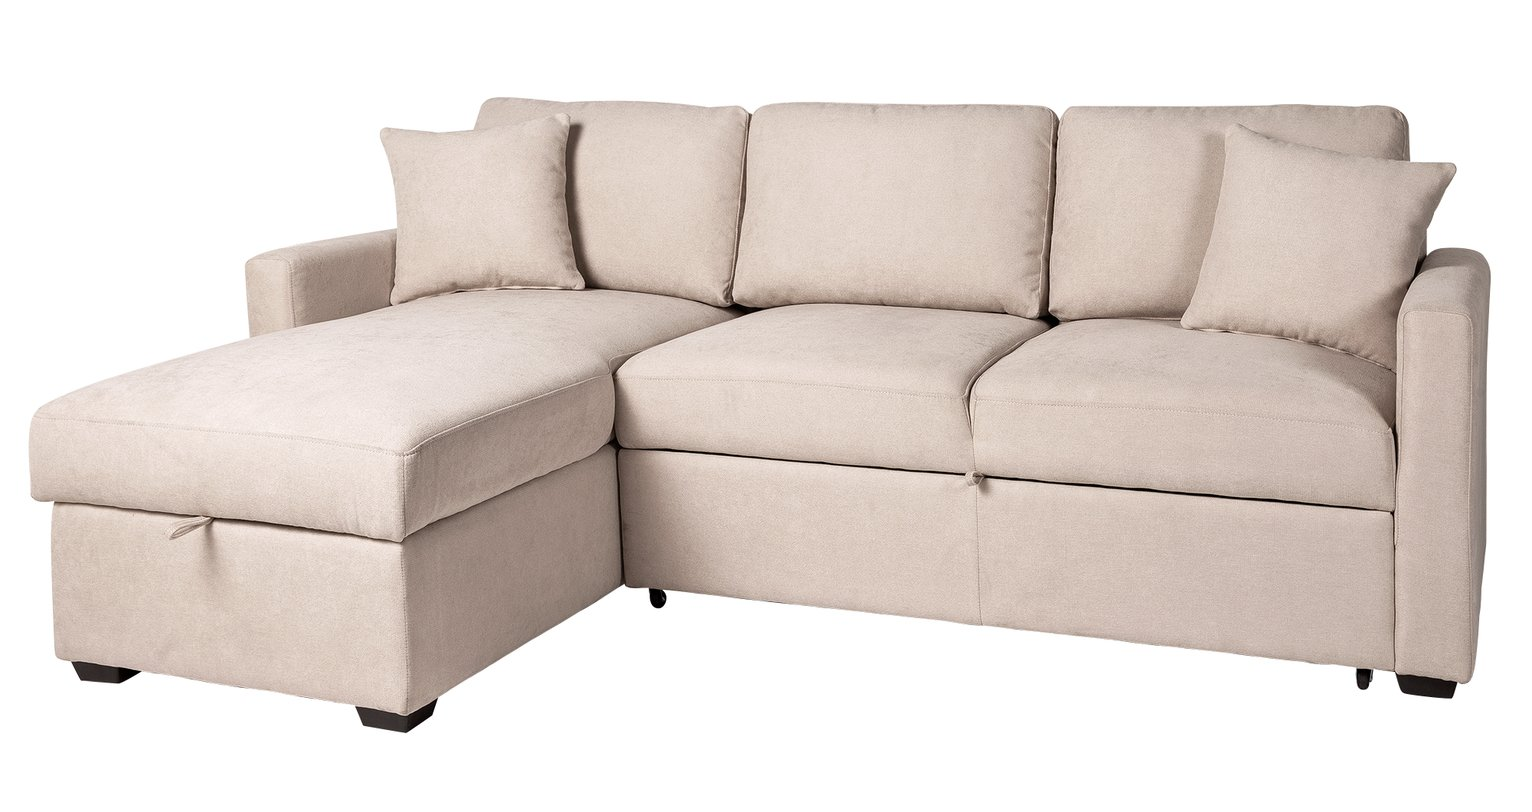 sofa beds chairbeds and futons sofa beds chair beds and futons   argos   page 3  rh   argos co uk